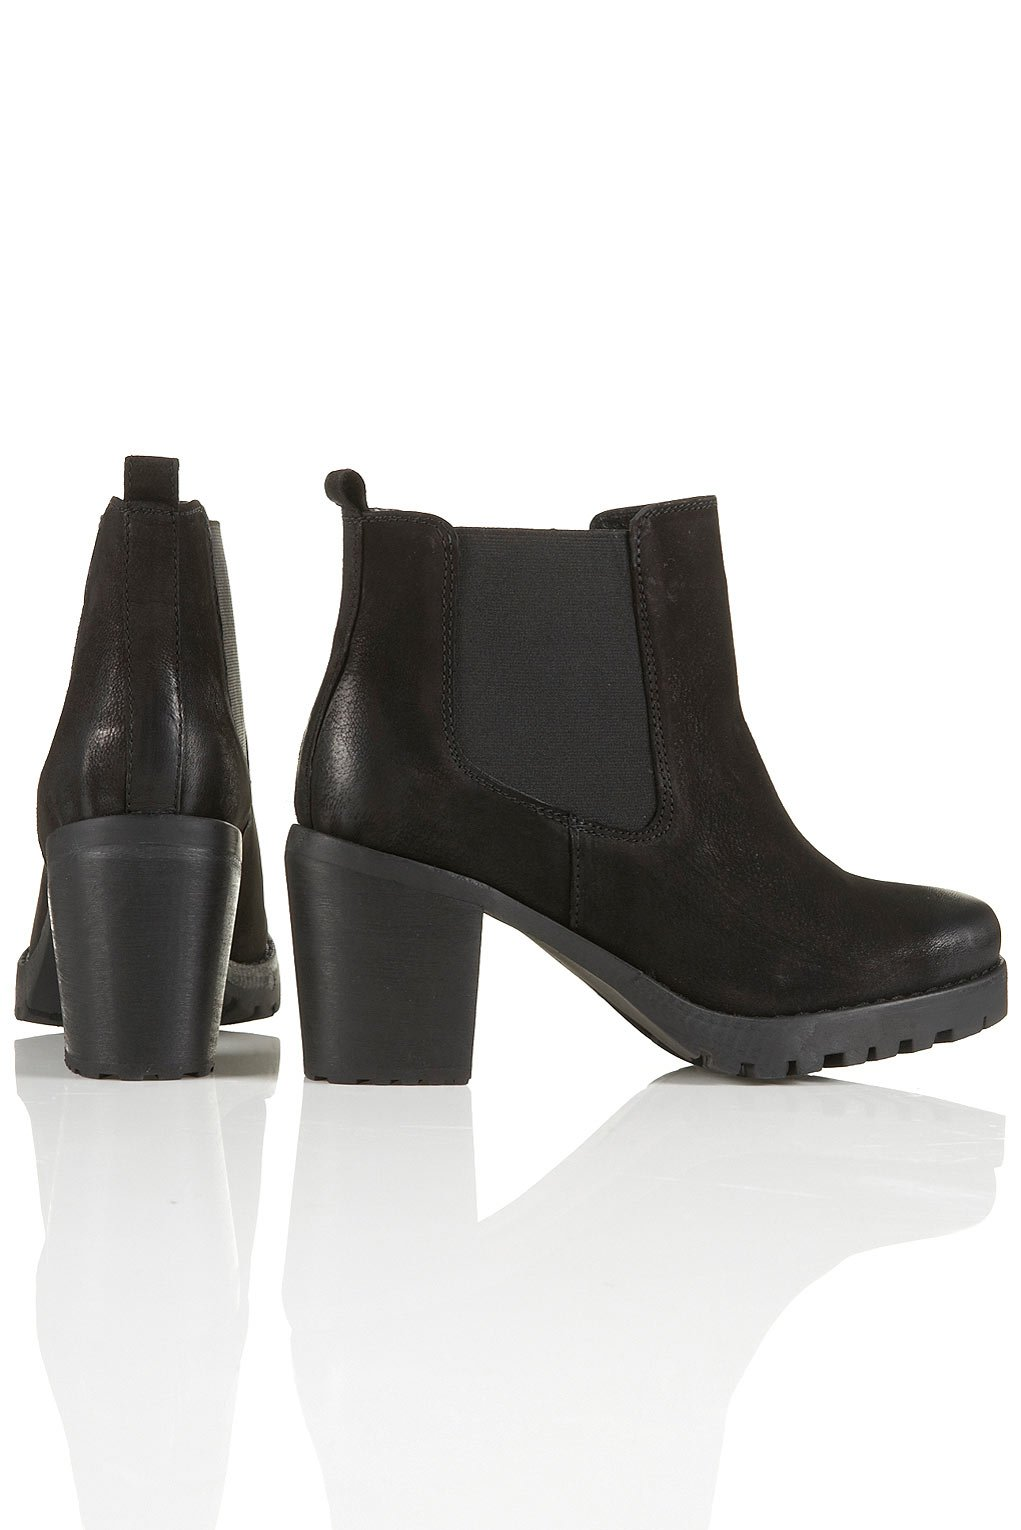 TOPSHOP Alert Chunky Chelsea Boots in Black